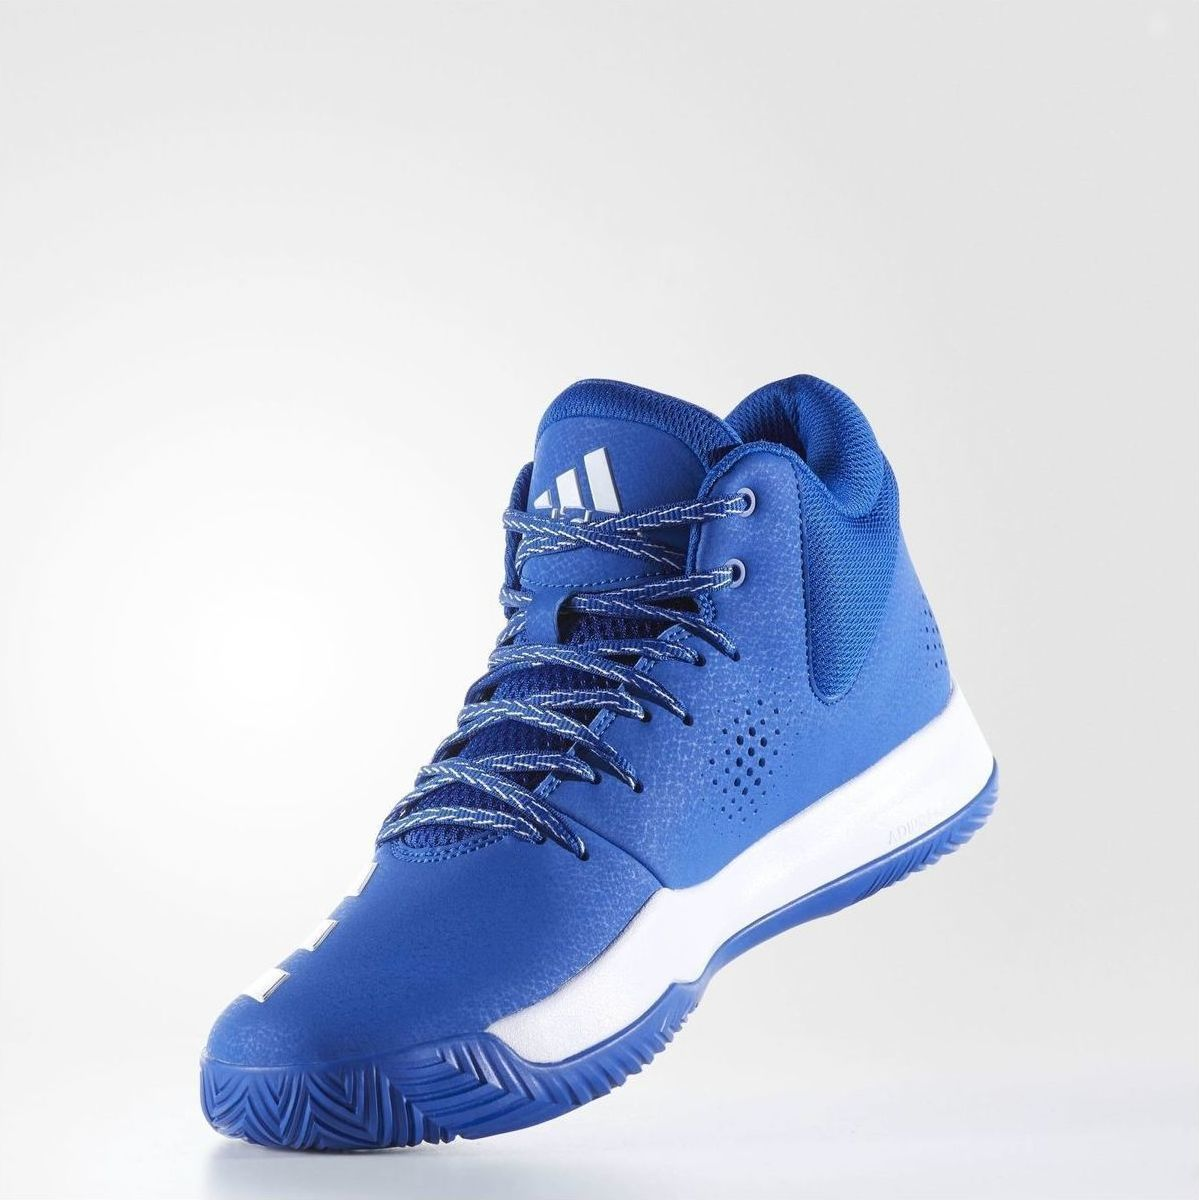 0c44622466 Adidas Court Fury 2017 BY4185 - Skroutz.gr